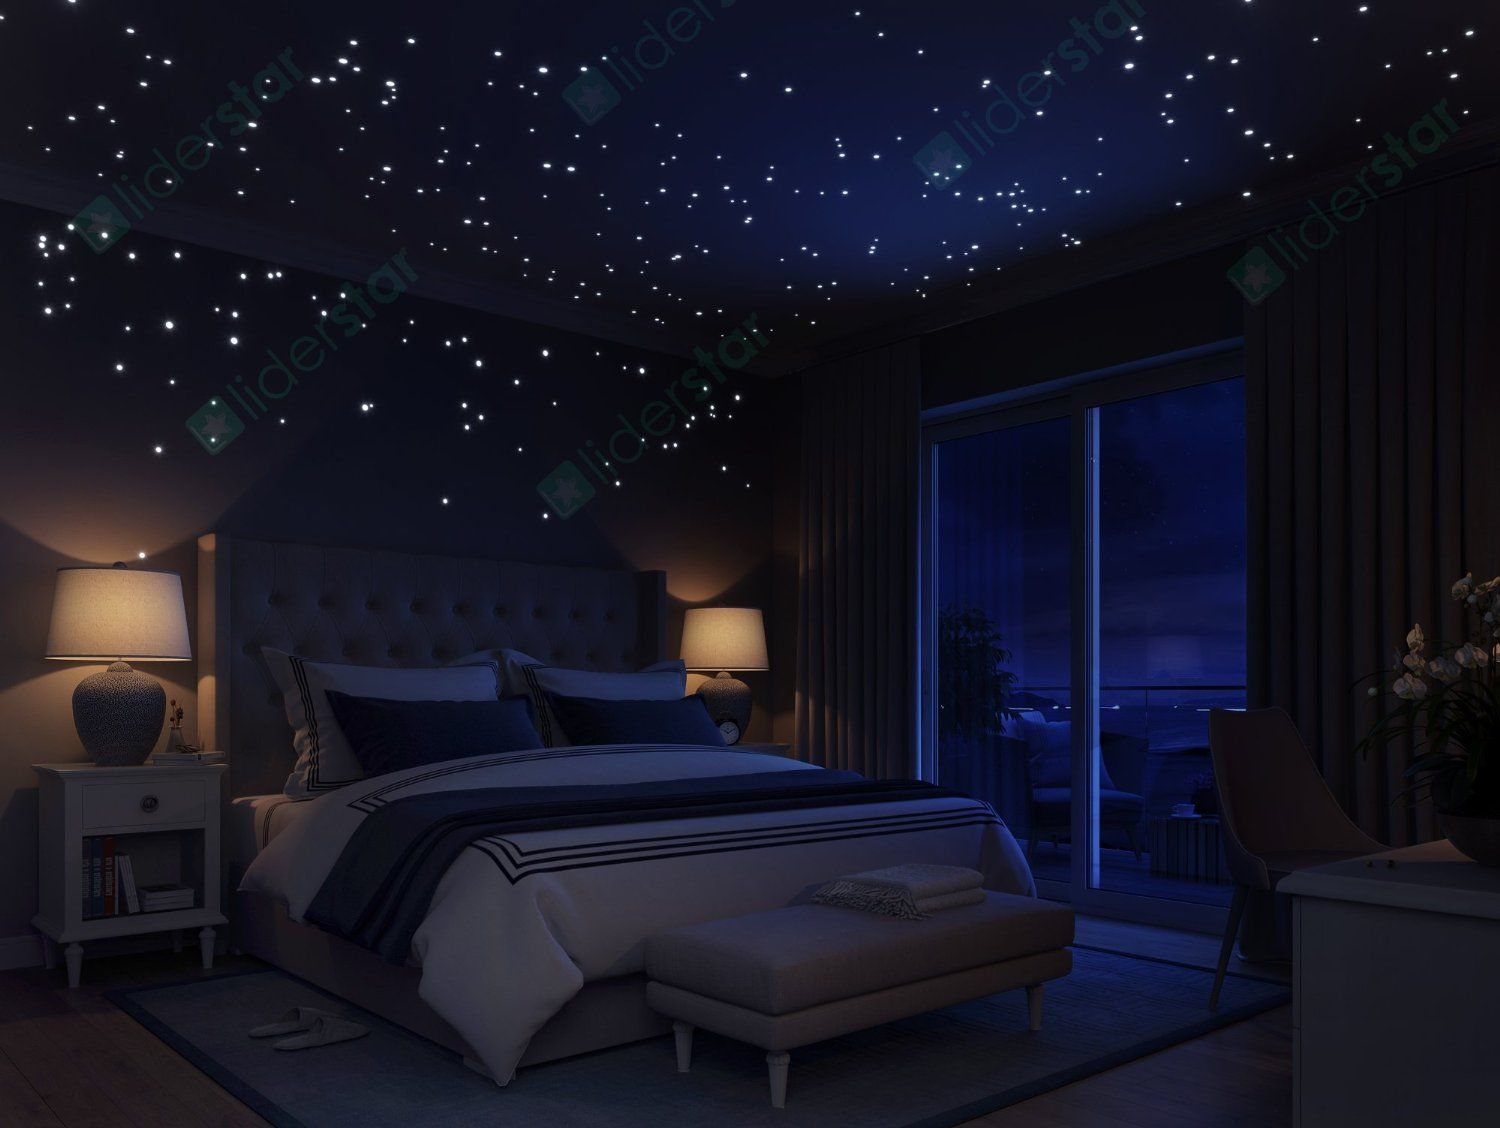 Glow In The Dark Stars Wall Stickers 252 Dots And Moon